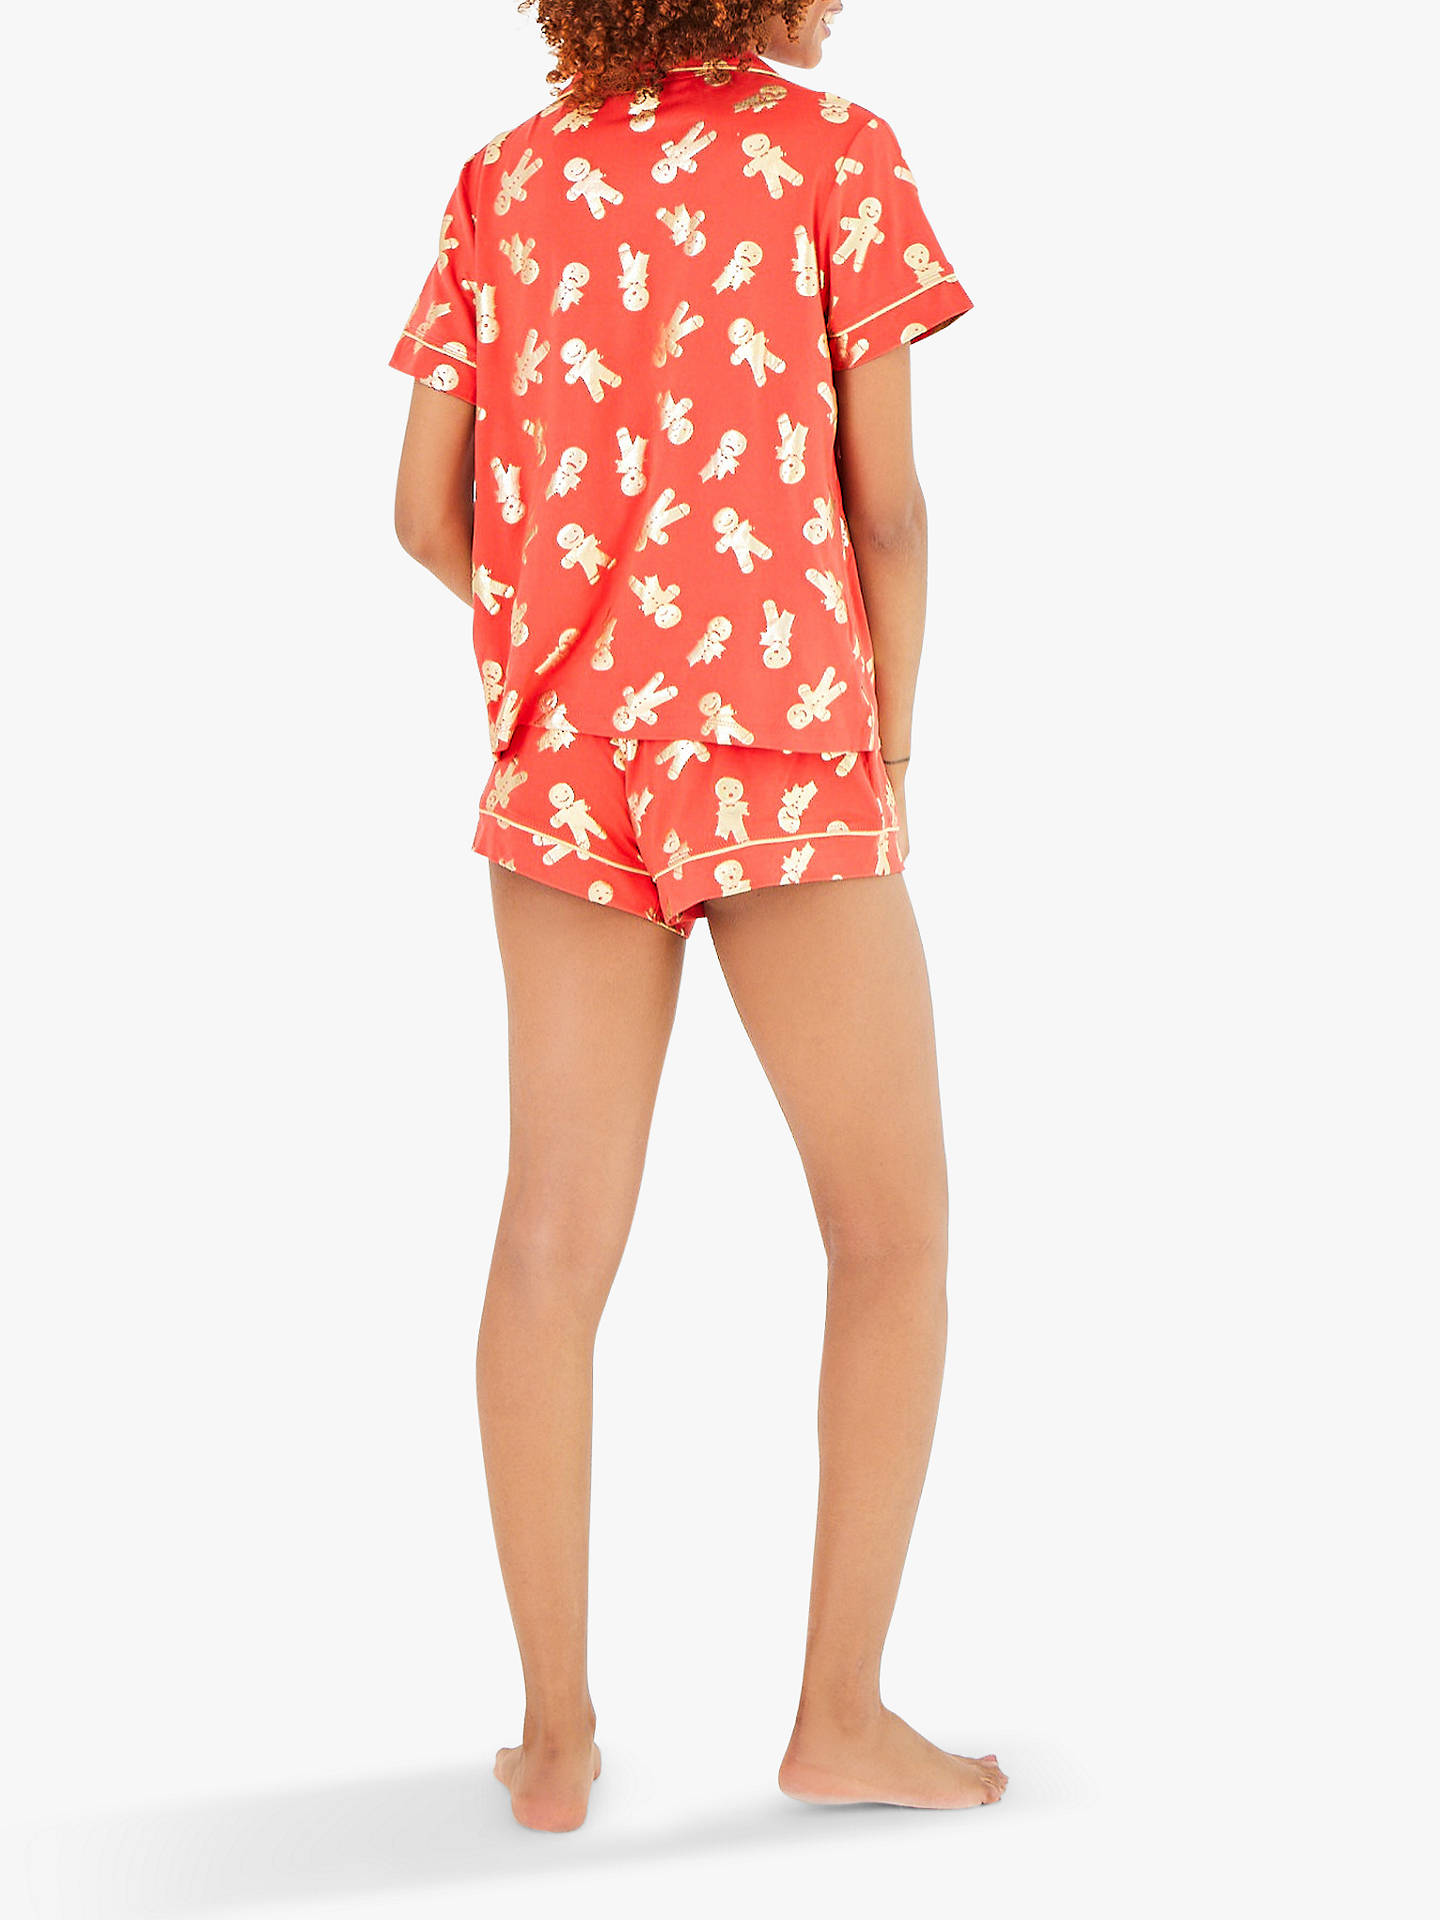 Buy Chelsea Peers Gingerbread Shorts Pyjama Set, Red, S Online at johnlewis.com